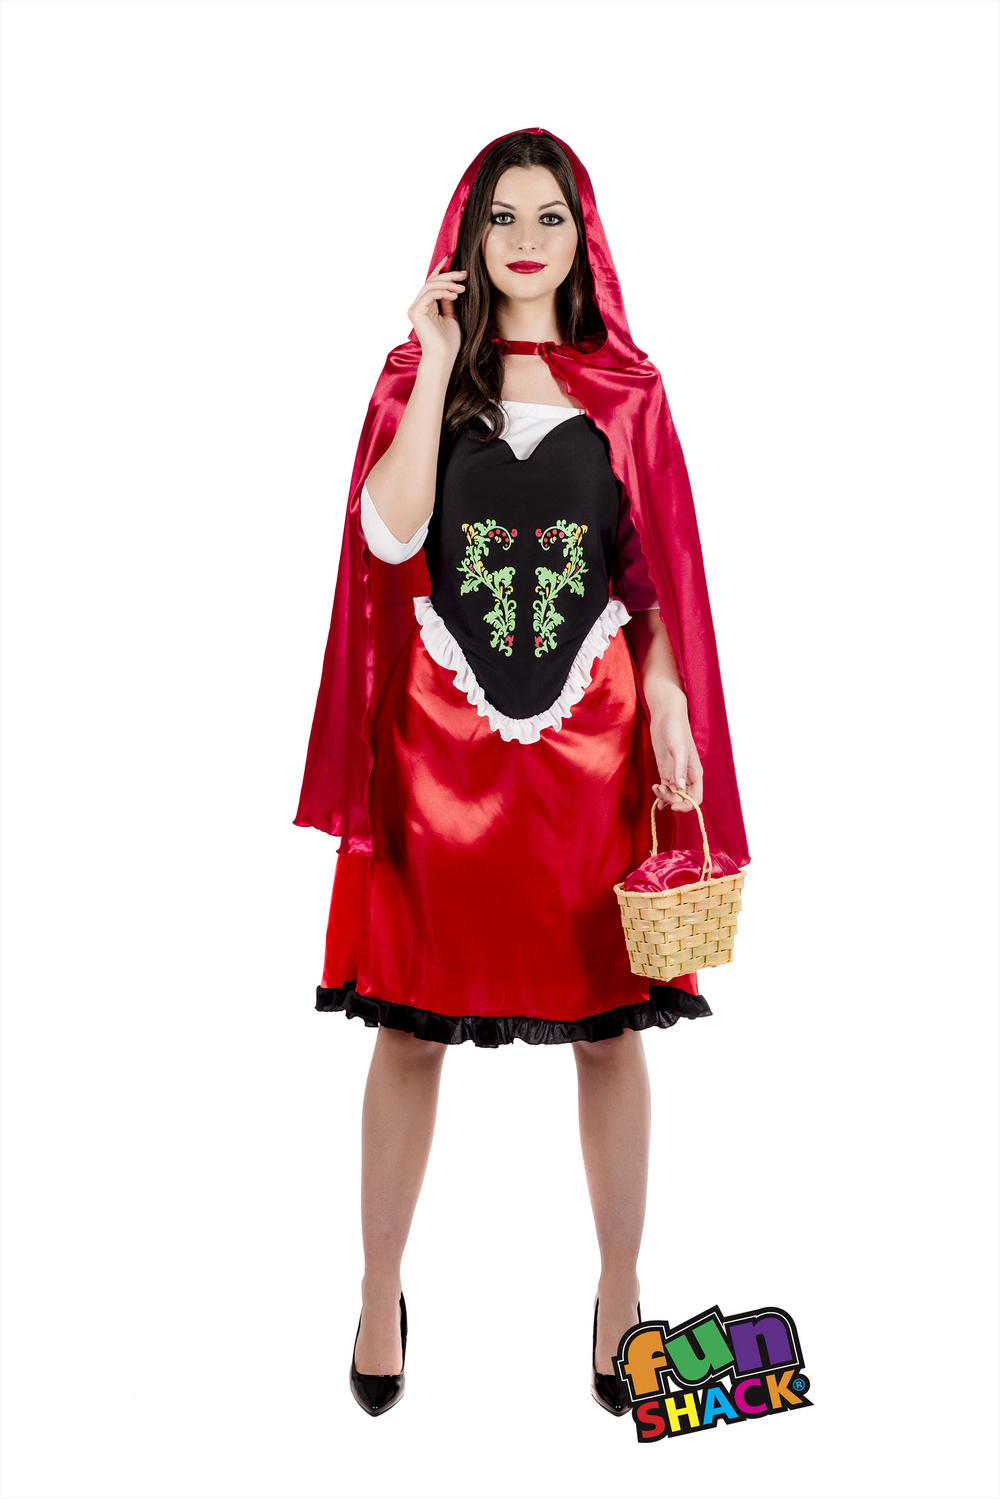 Ladies Red Riding Hood